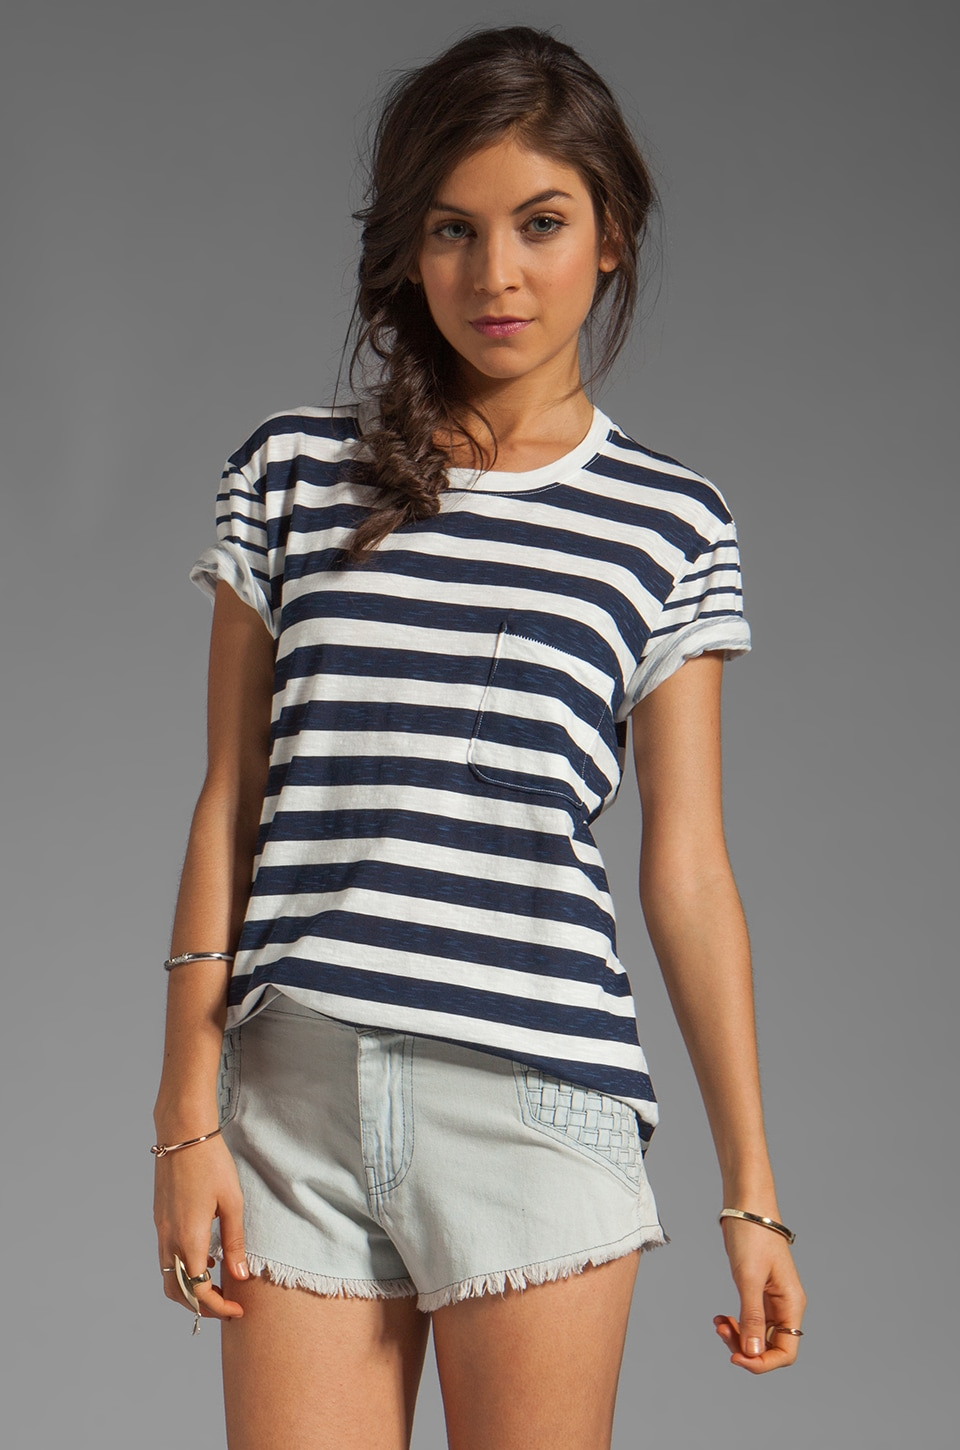 TEXTILE Elizabeth and James Multi Stripe Bowery Tee in White/Navy